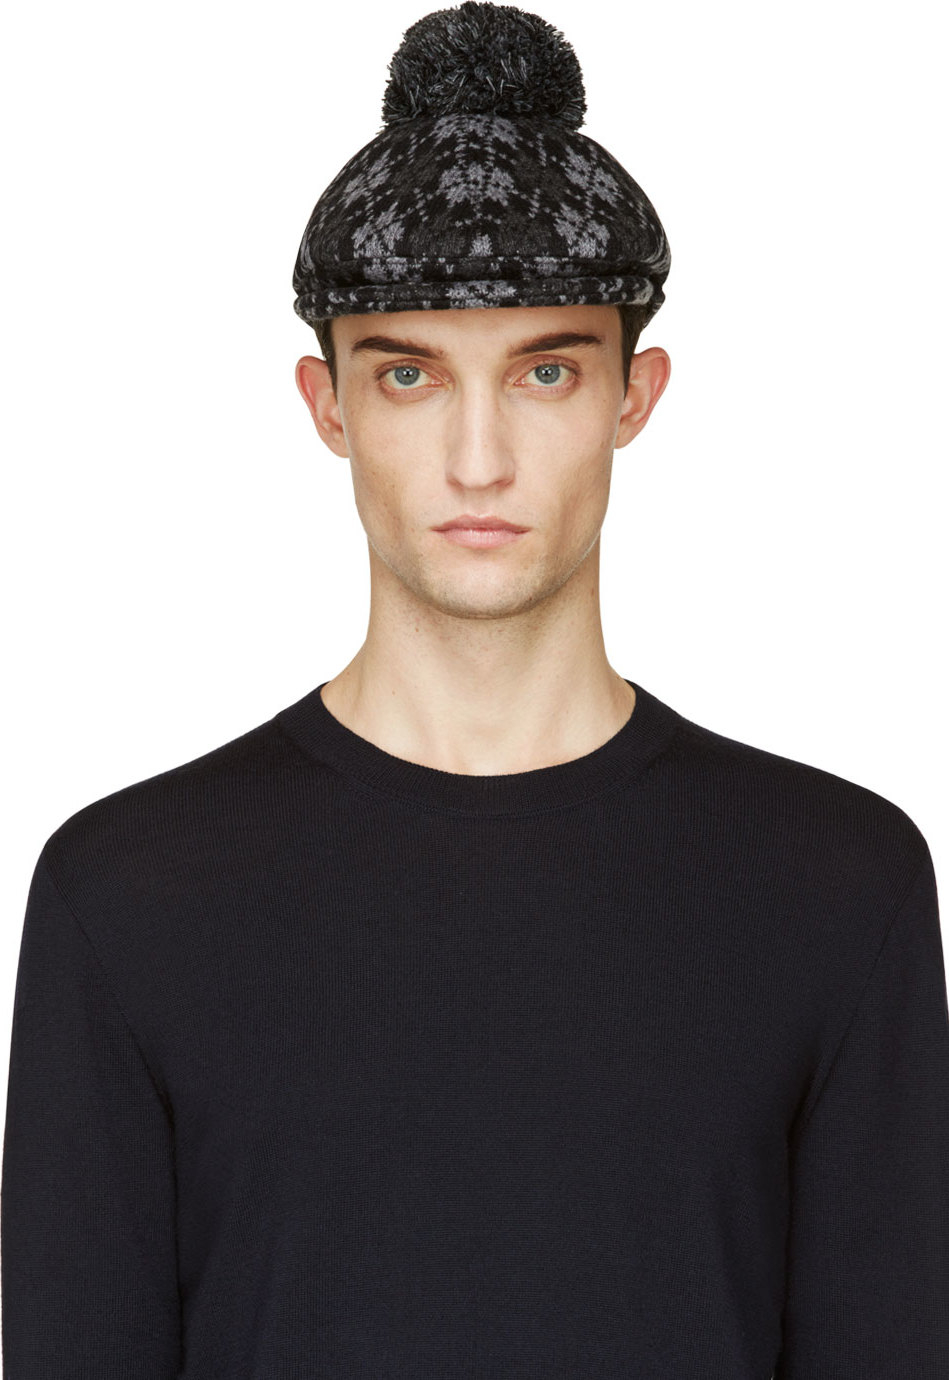 Lyst - Moncler Gamme Bleu Black and Grey Argyle Pompom Golf Cap in ... c3d3ed55db1